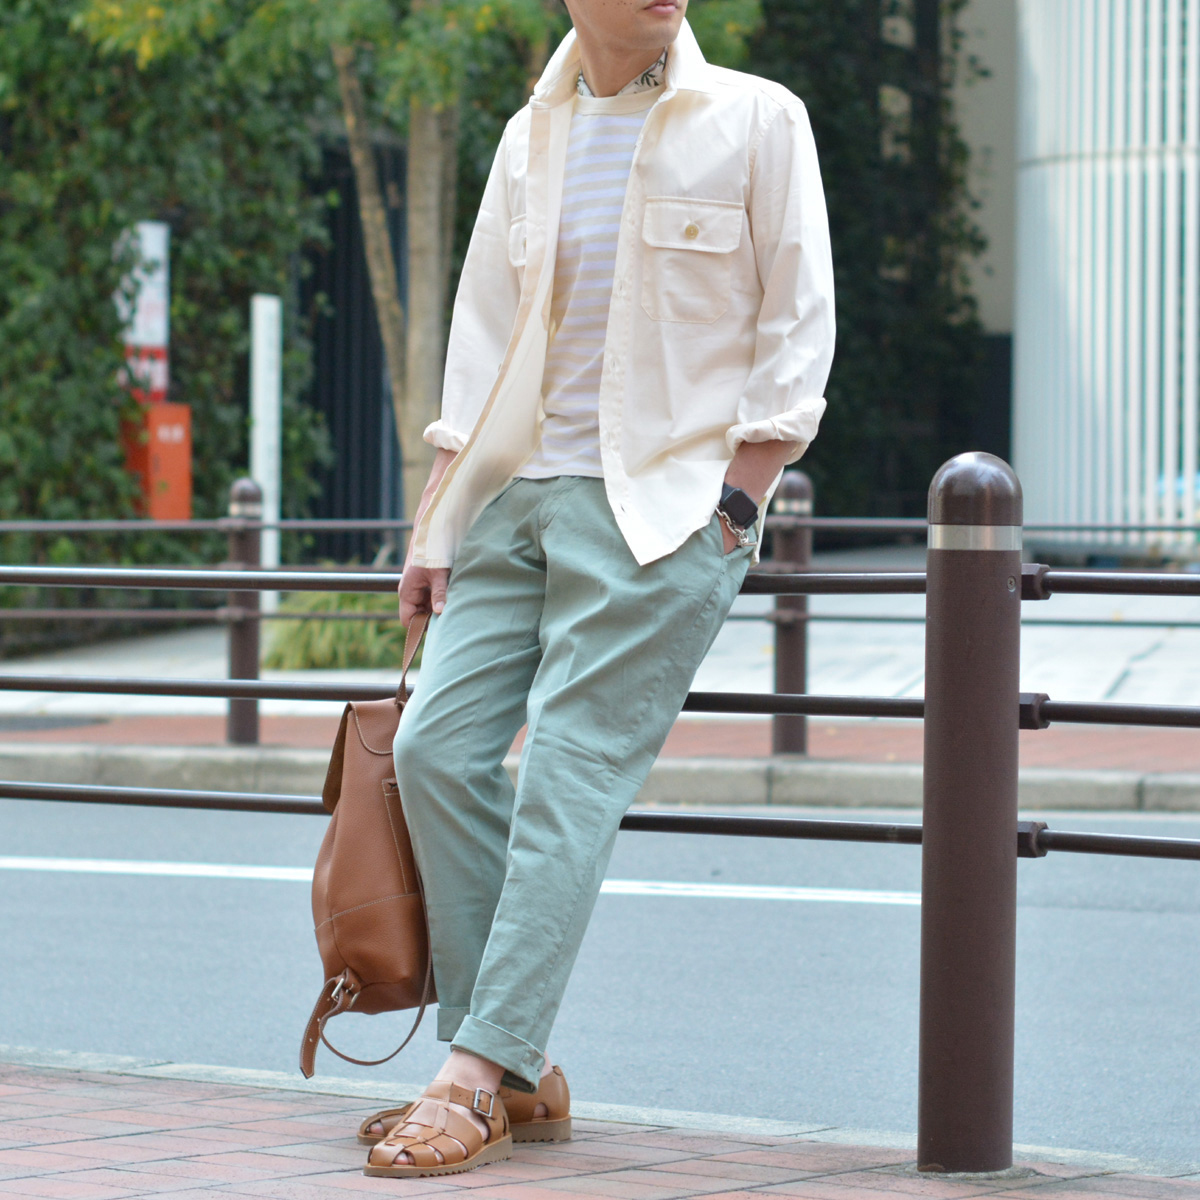 GRENFELL【グレンフェル】ミリタリーシャツ Overshirts Grenfell cloth Offwhite コットン オフホワイト